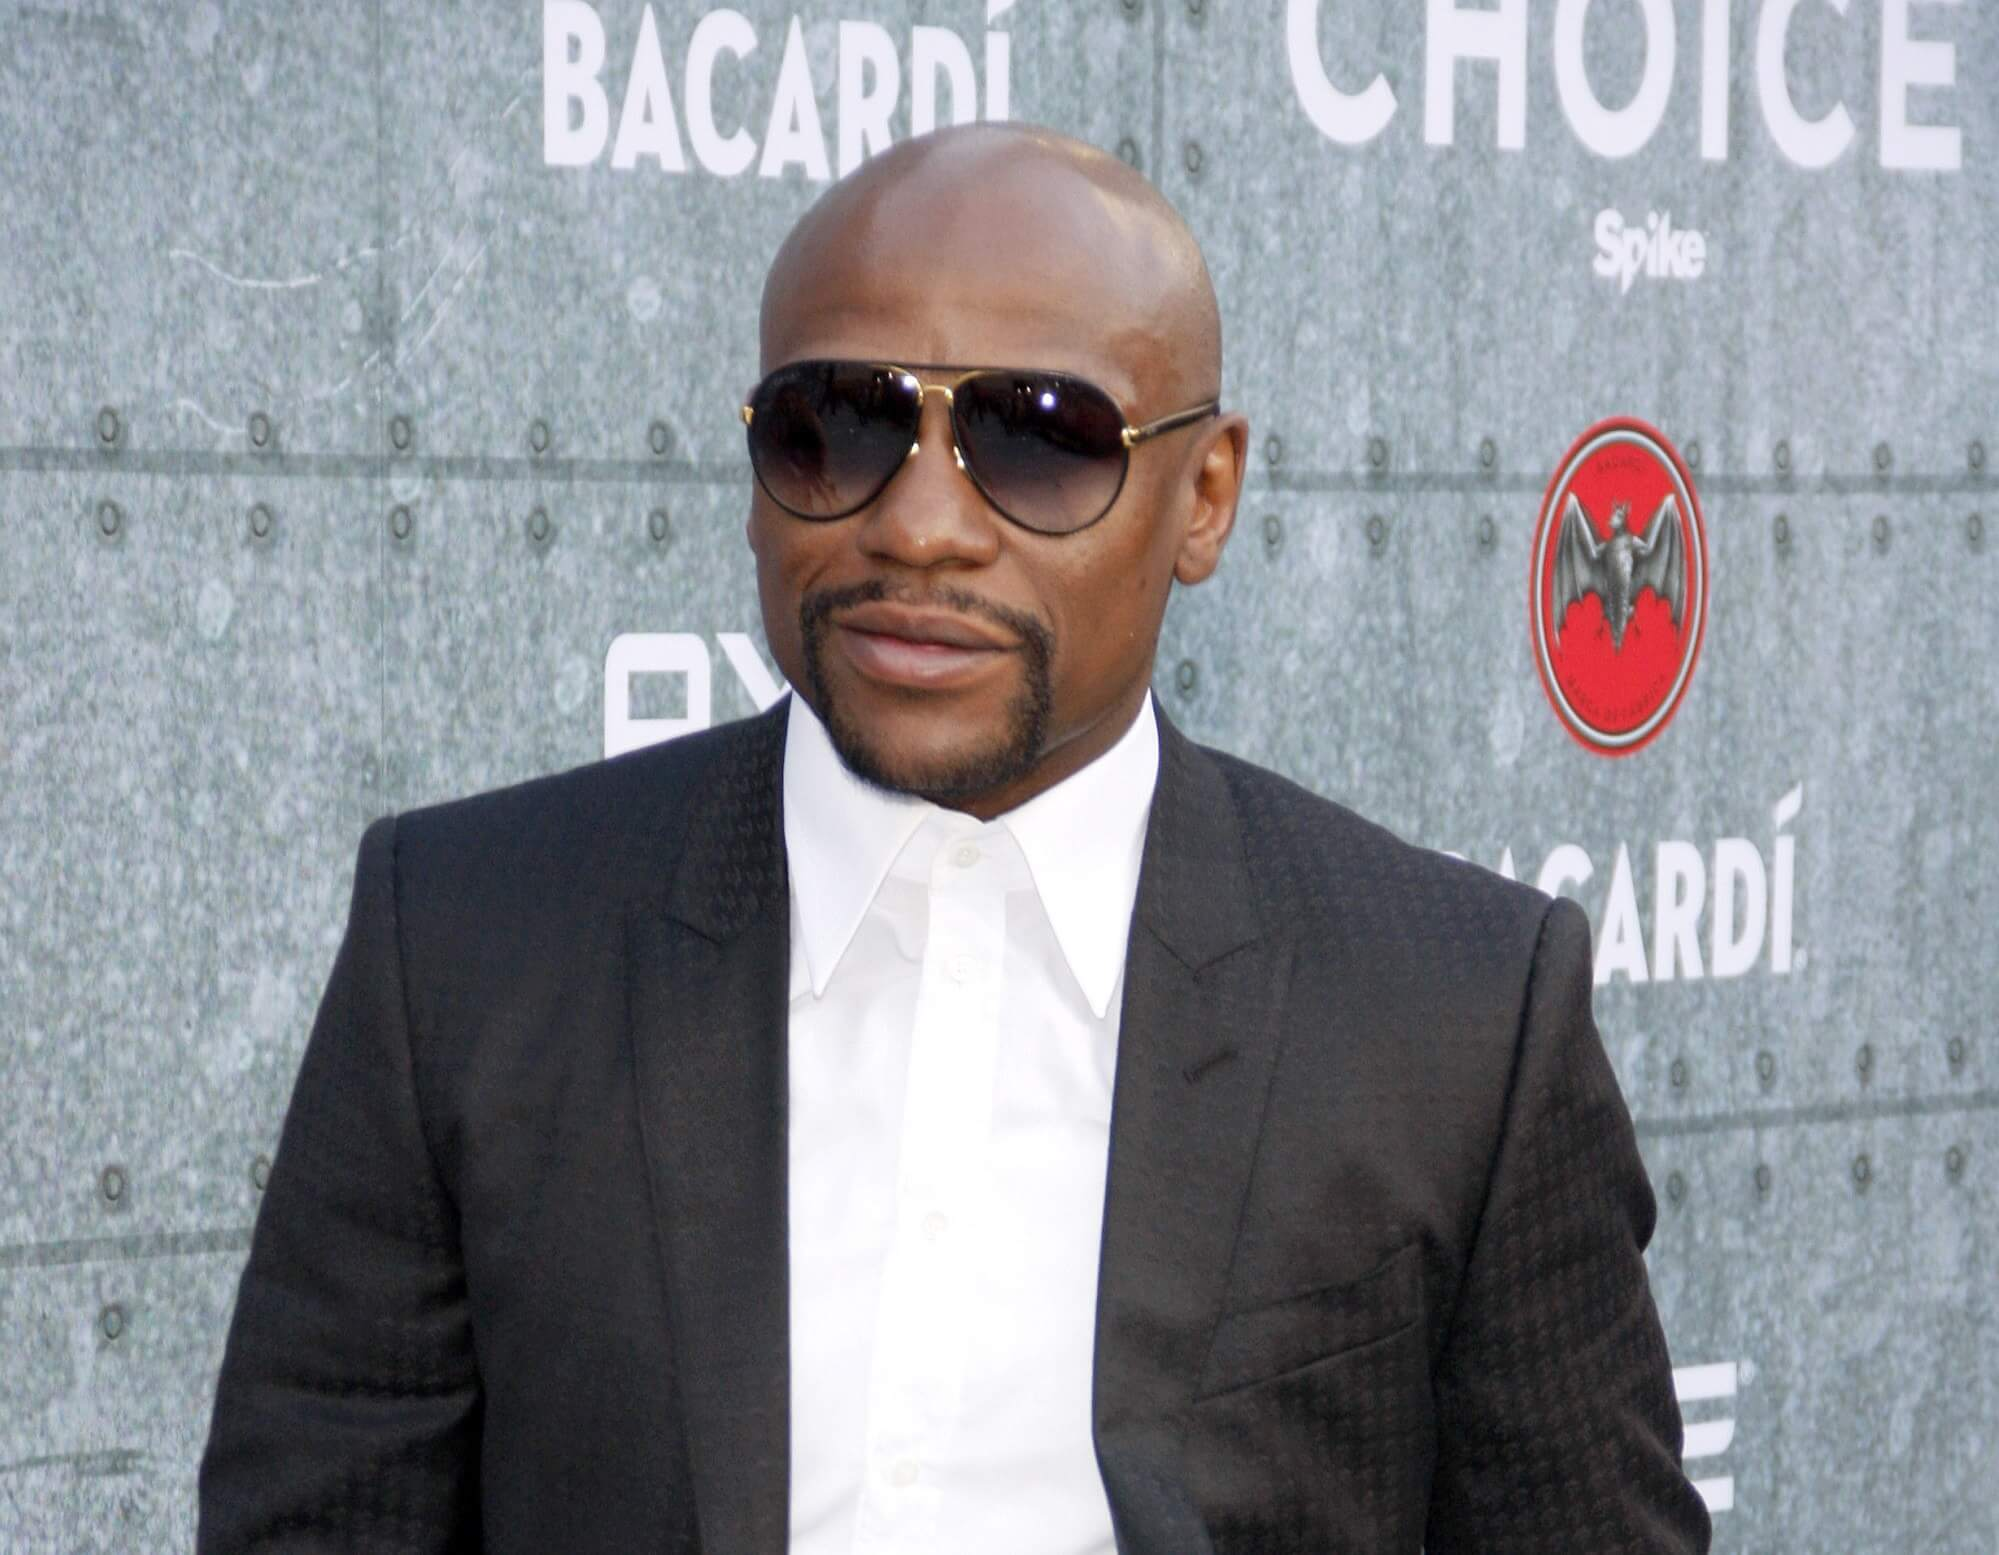 SEC charges Floyd Mayweather, DJ Khaled with cryptocurrency fraud